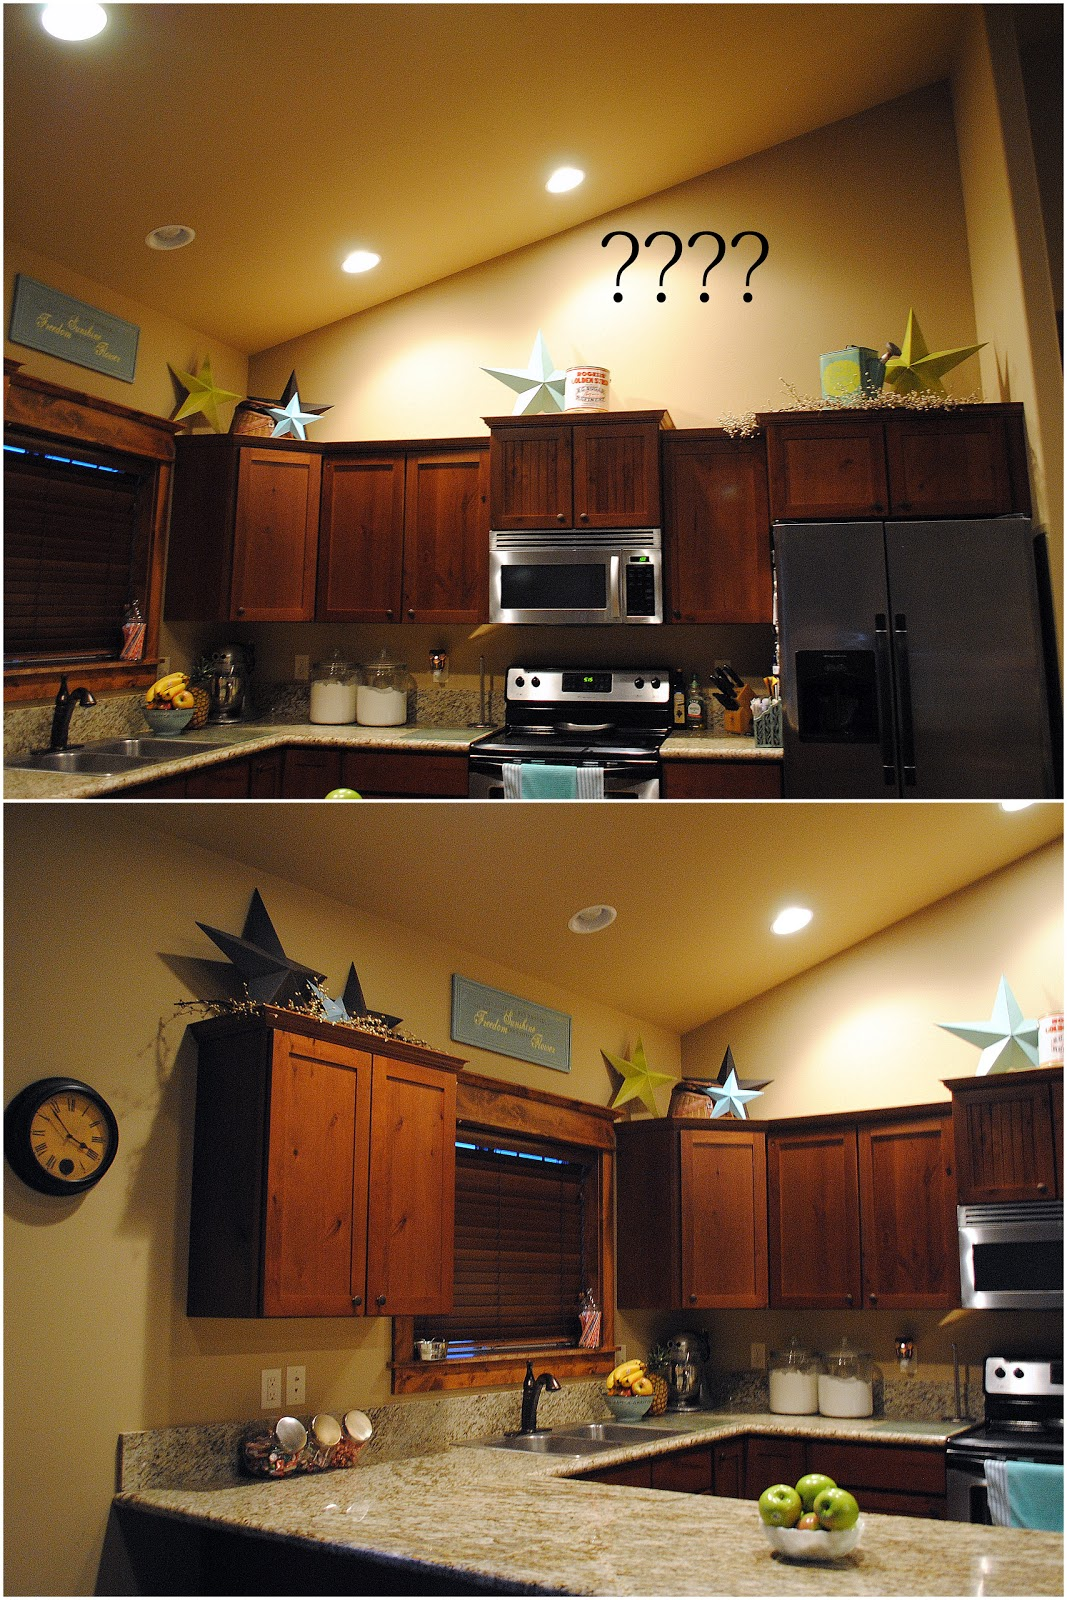 How to Decorate Vaulted Ceiling Kitchen